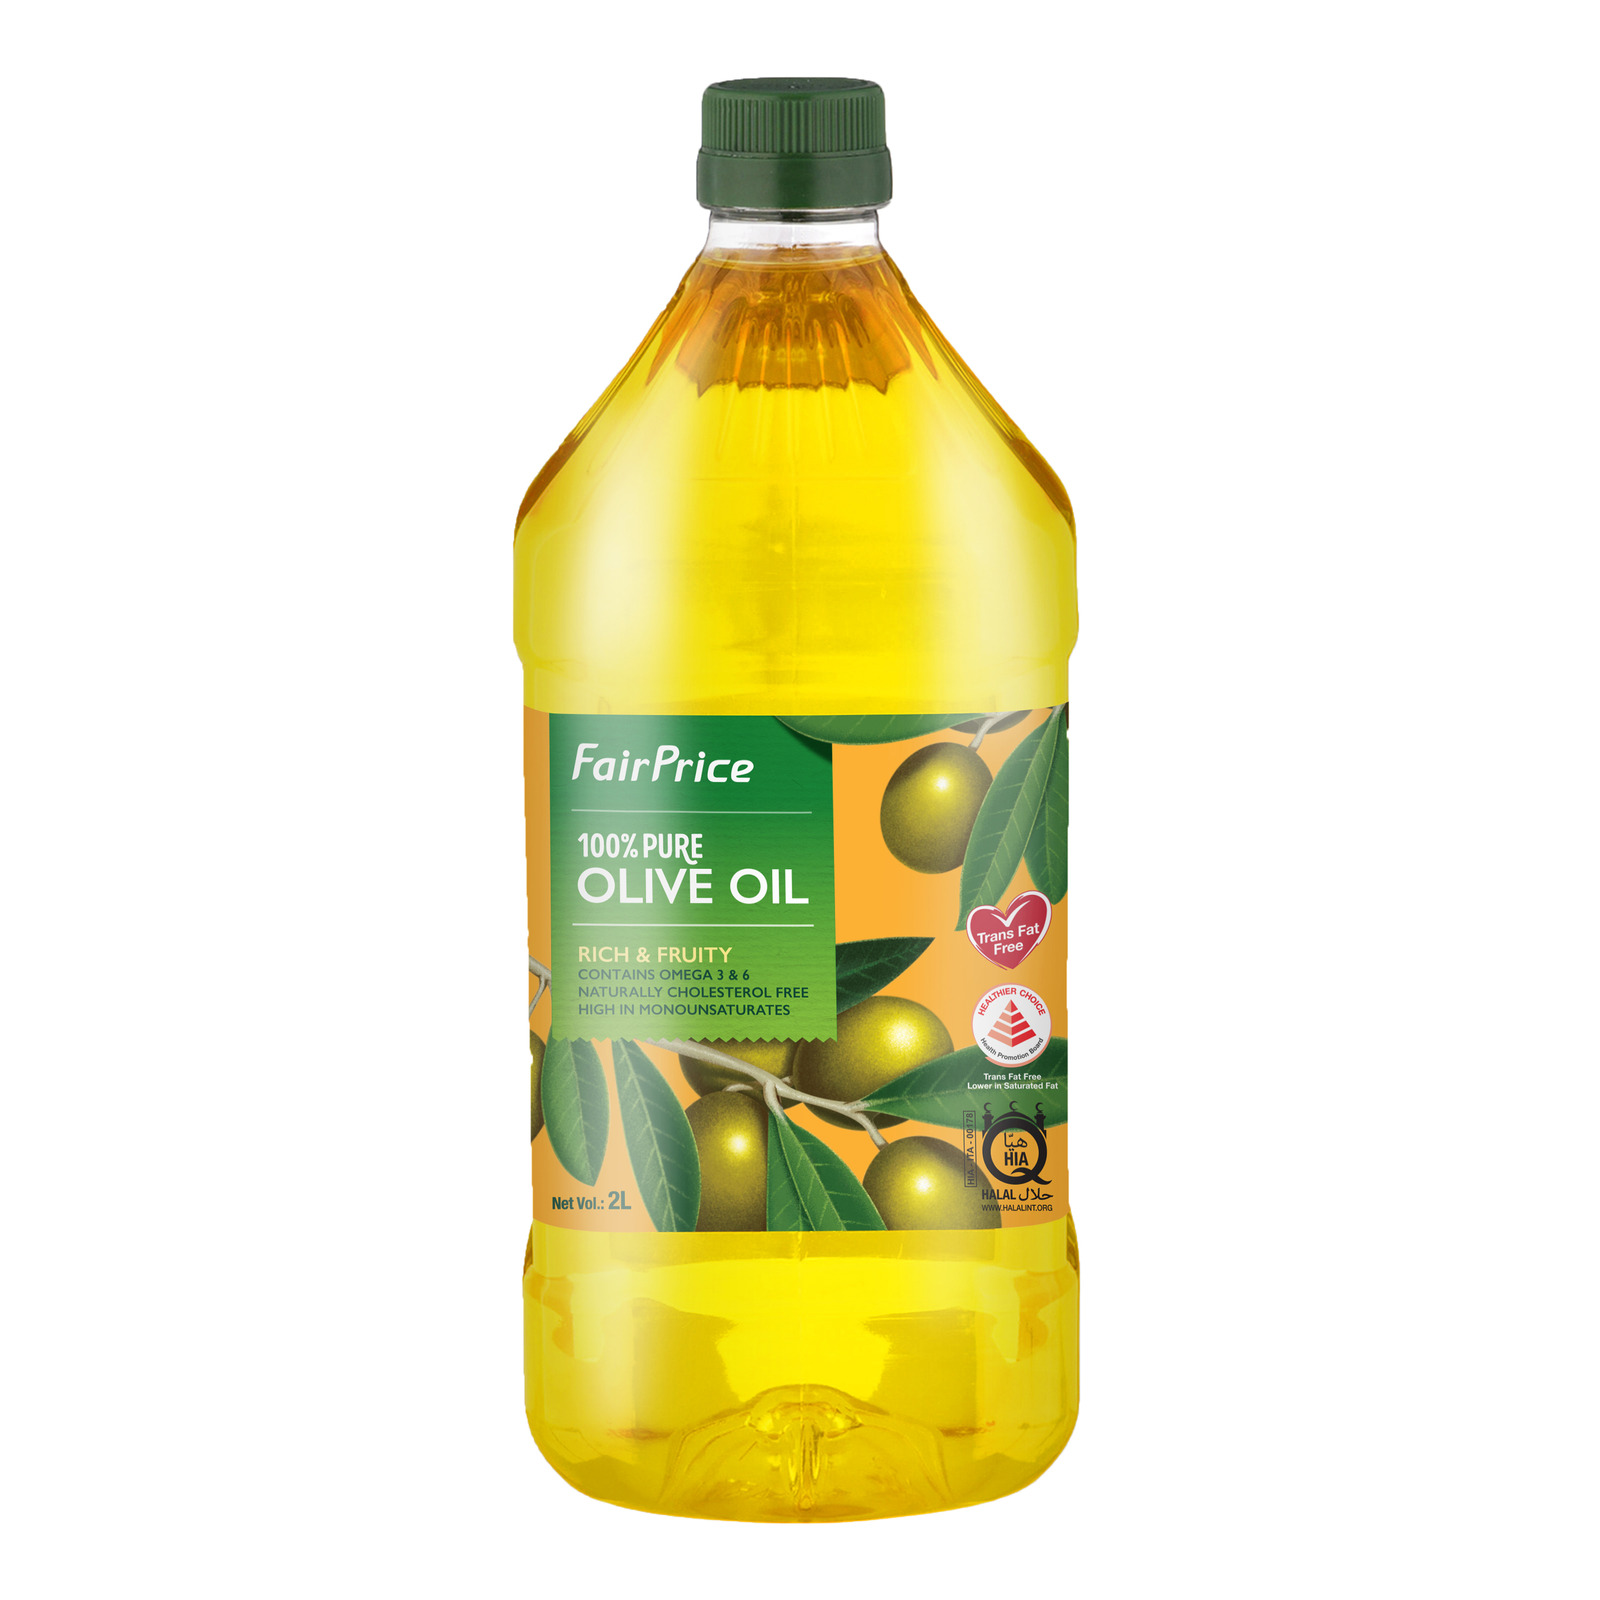 FairPrice Olive Oil - Rich & Fruity